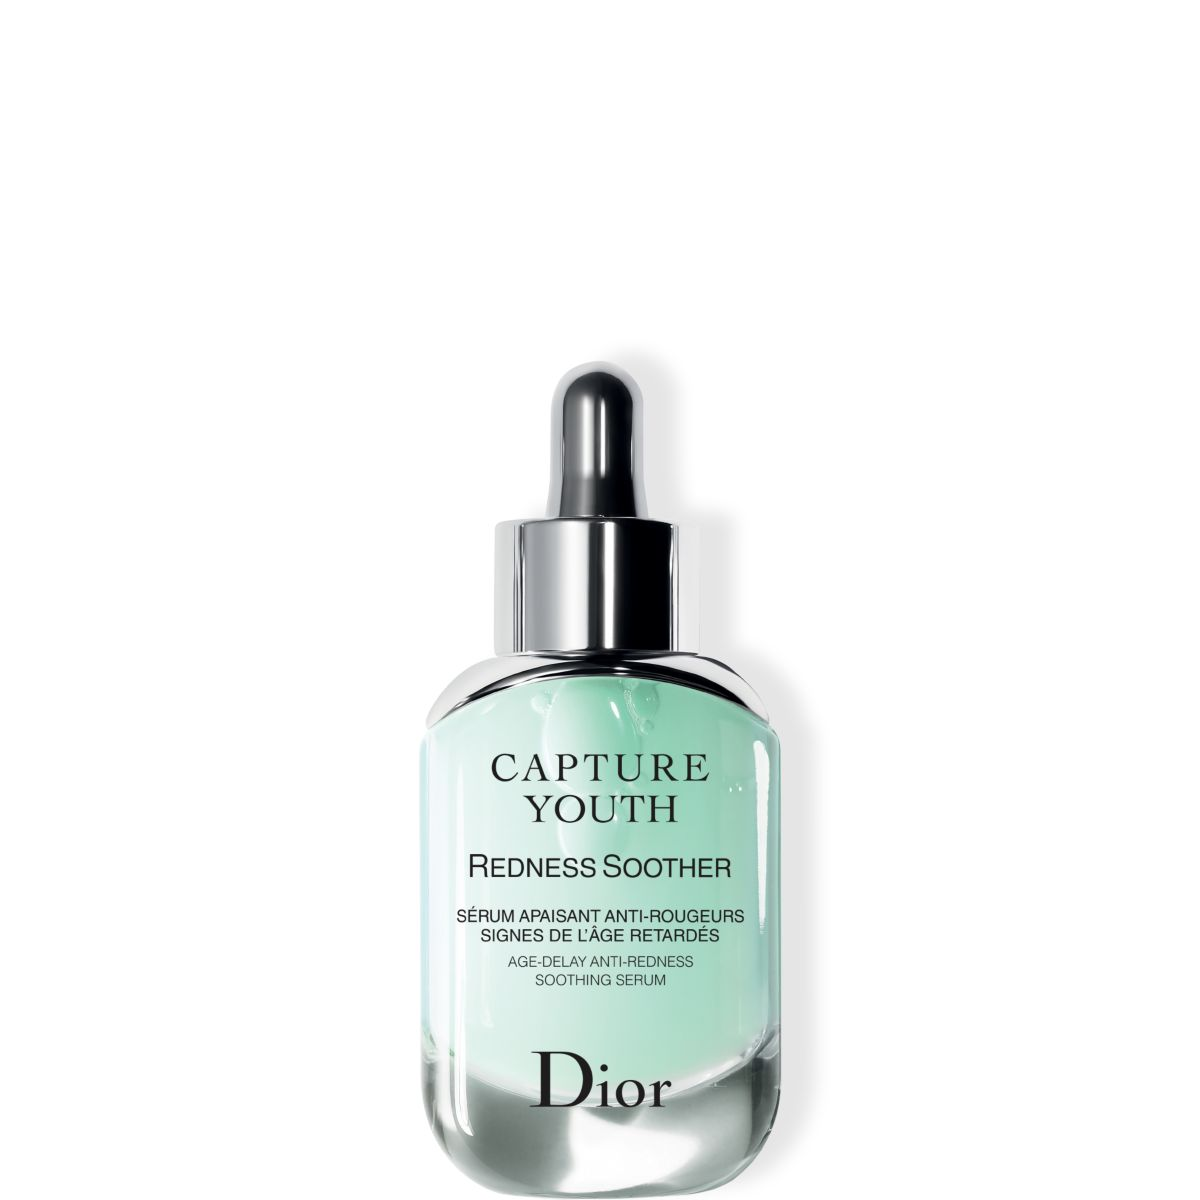 Dior - Capture Youth - Redness Soother Sérum apaisant anti-rougeurs